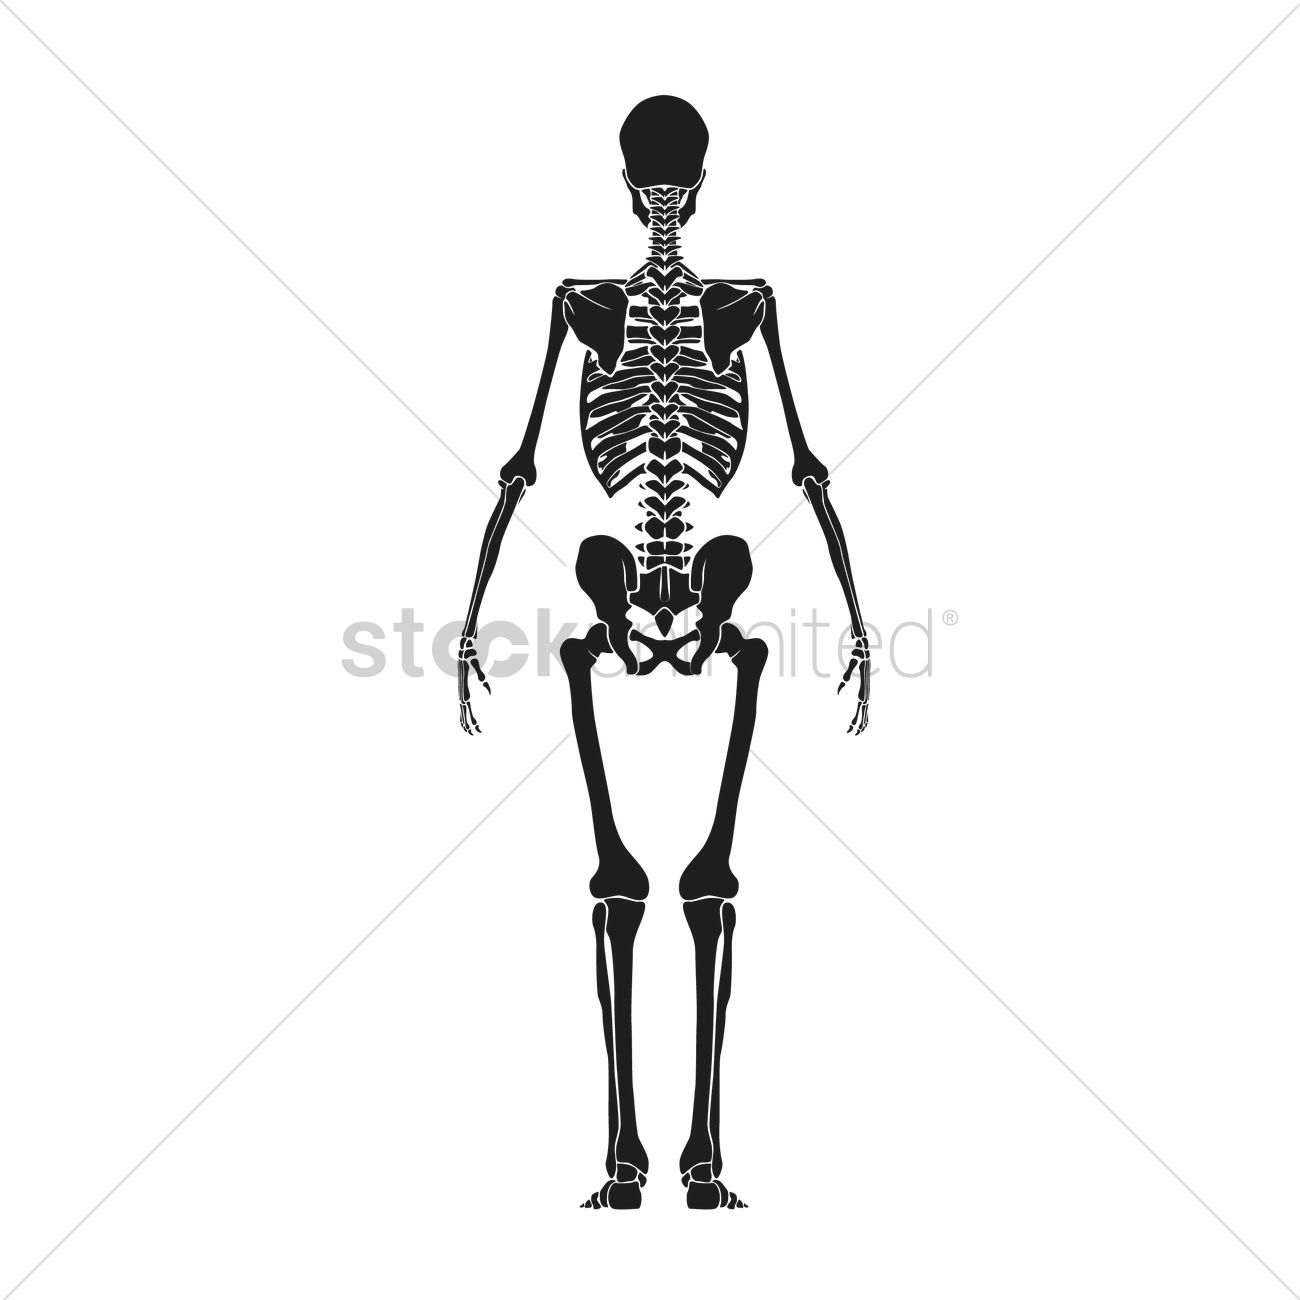 human skeleton vector image - 1516131 | stockunlimited, Skeleton